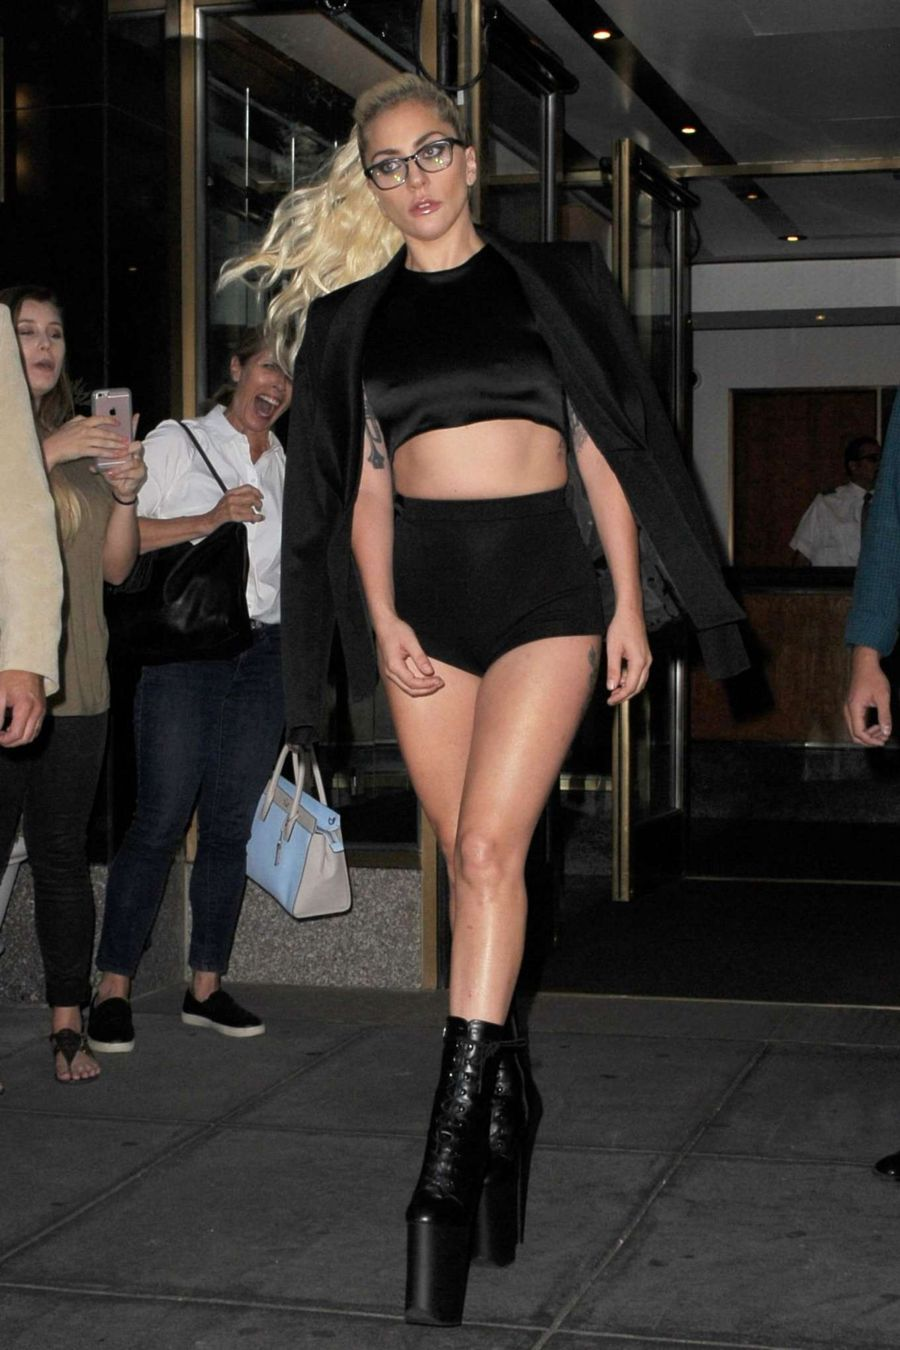 Lady Gaga Looks Fierce as she Attends Fashion Show